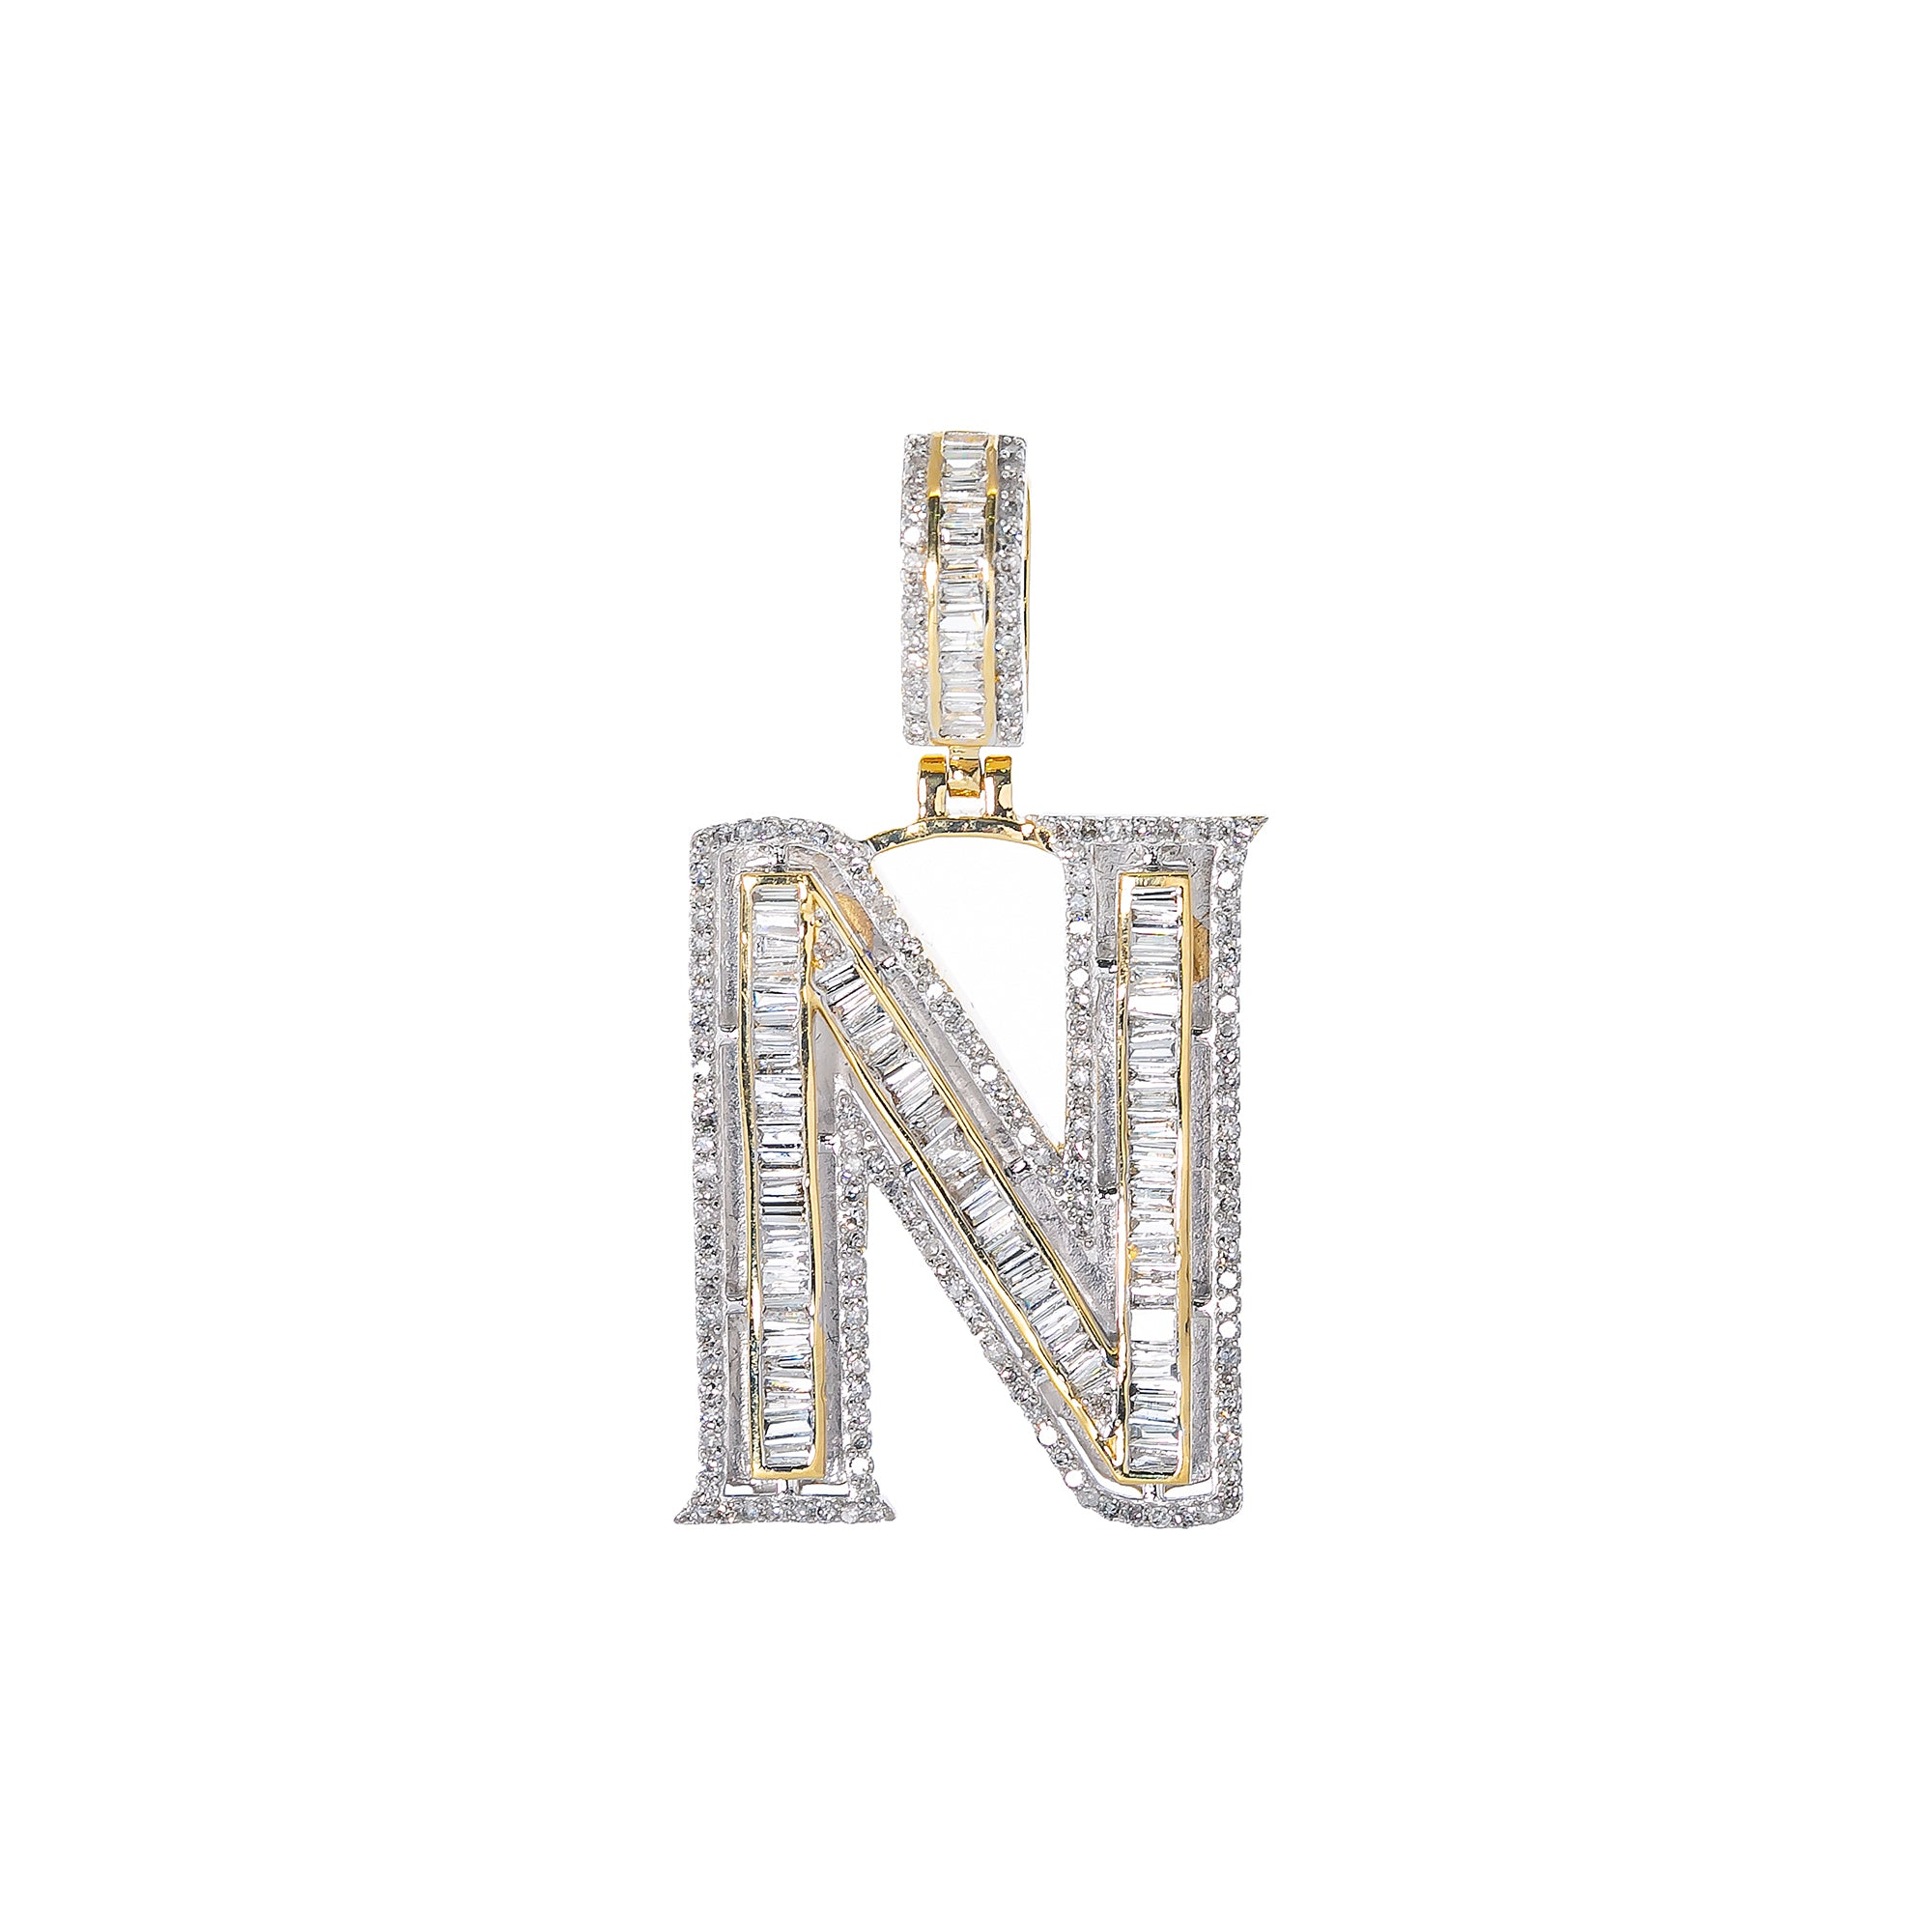 14K YELLOW GOLD UNISEX LETTER N WITH 1.22 CT DIAMONDS